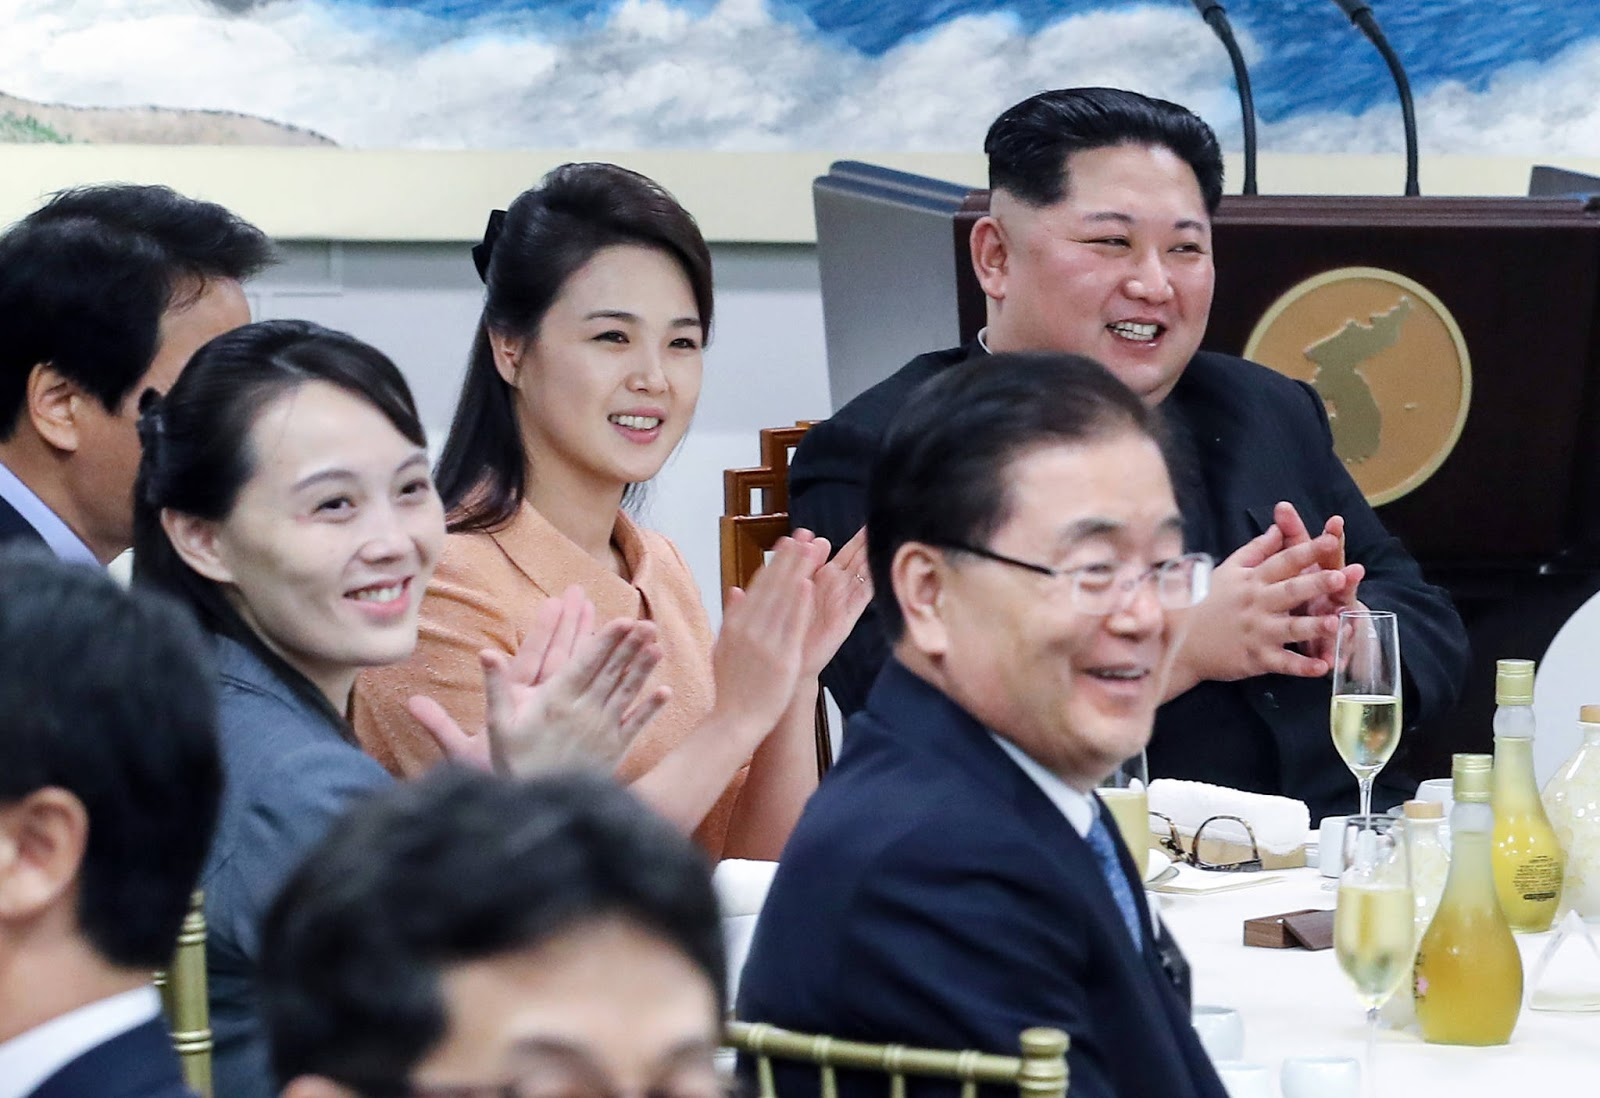 North Korean leader Kim Jong-un and his wife, Ri Sol-ju  with his sister, Kim Yo Jong, at the banquet in Panmunjeom.